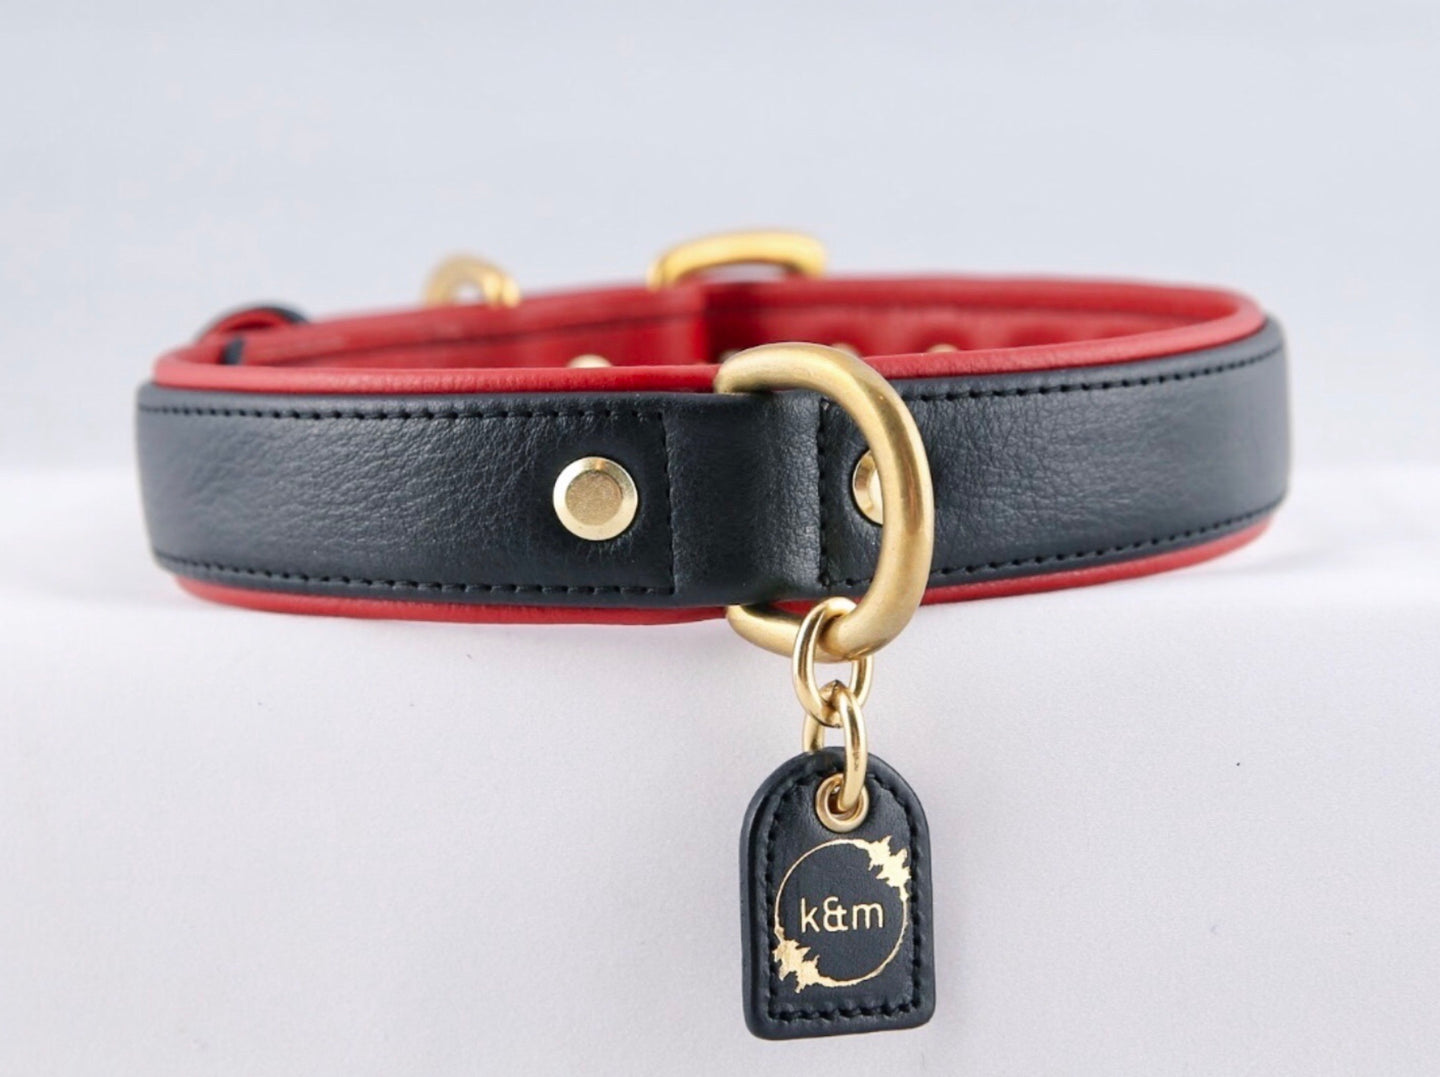 Genuine Leather Dog Collar: The Dooley Collar